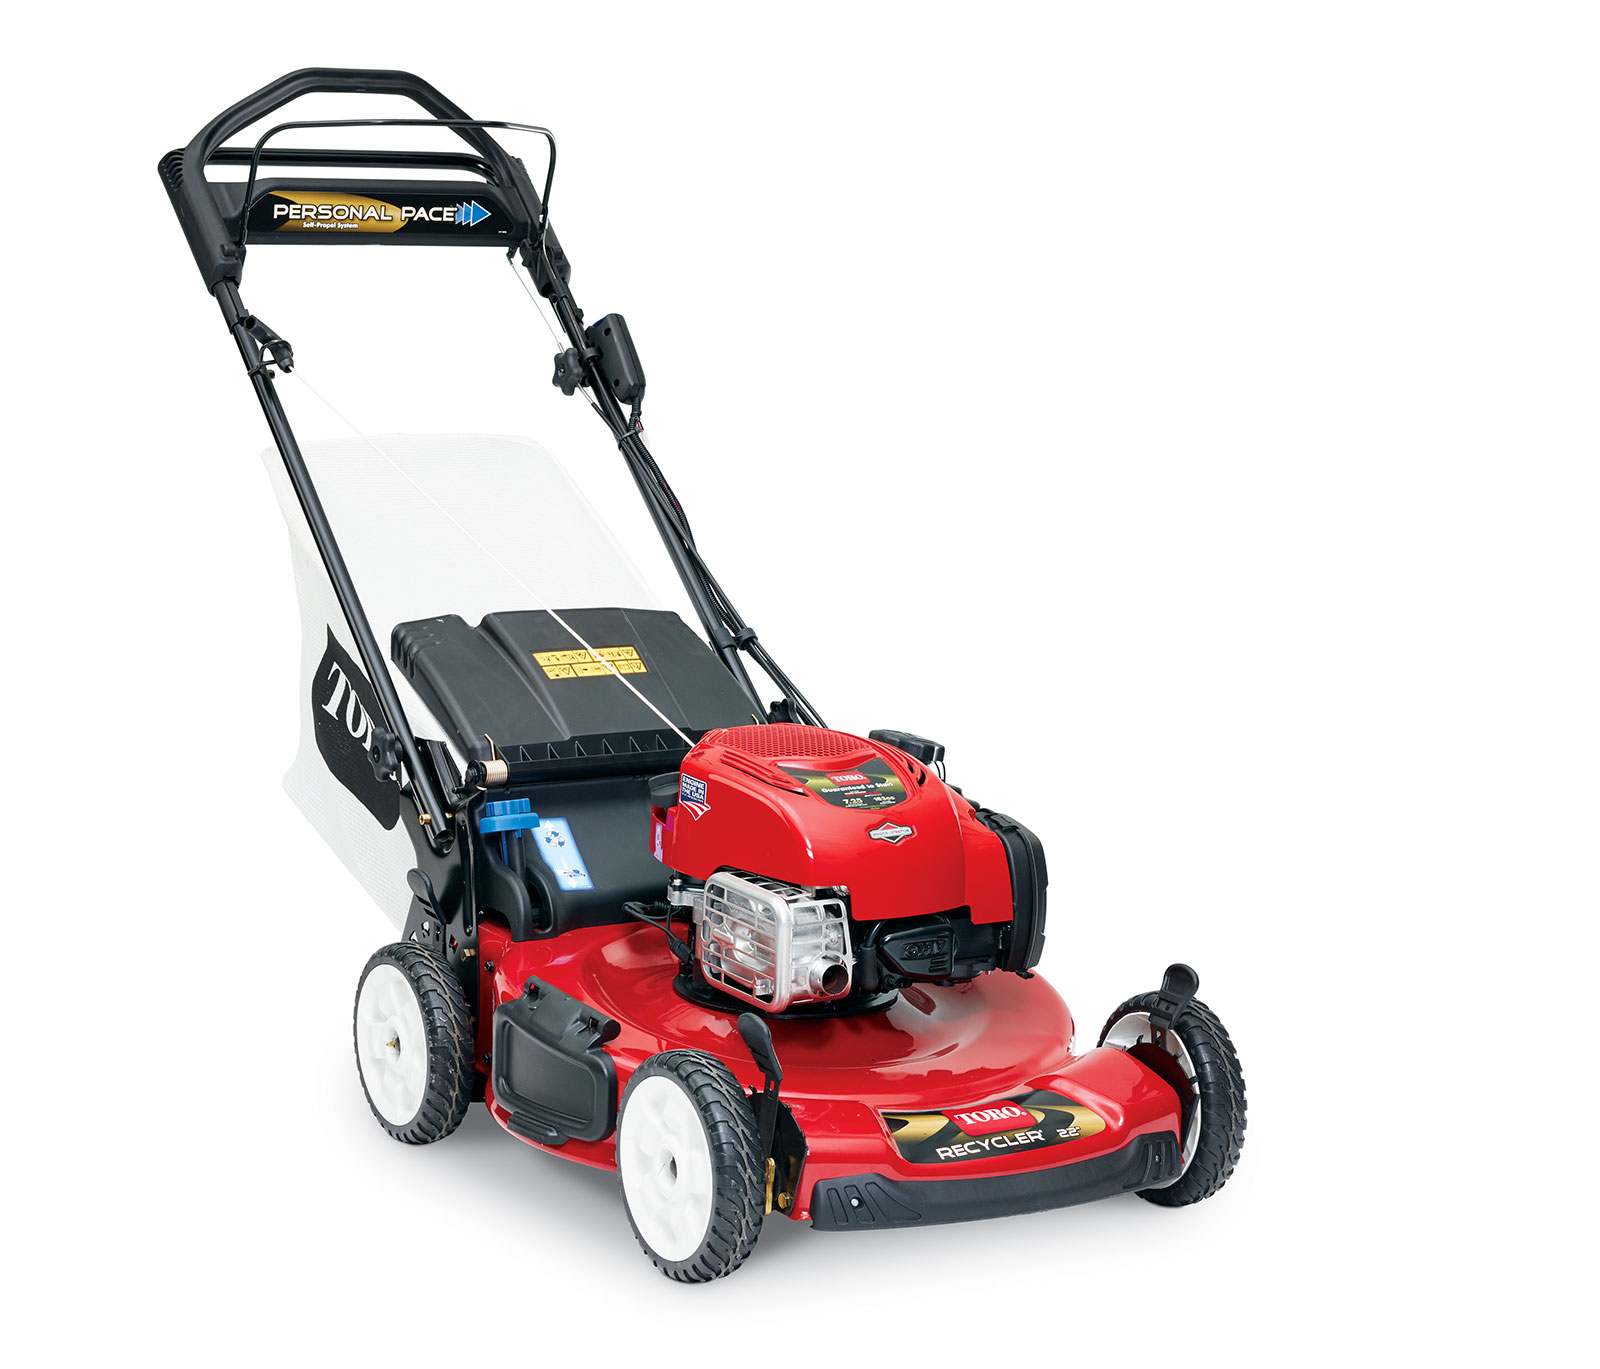 toro 22 quot   56 cm  personal pace u00ae electric start lawn mower craftsman 675 lawn mower owner's manual craftsman briggs and stratton 675 series lawn mower manual